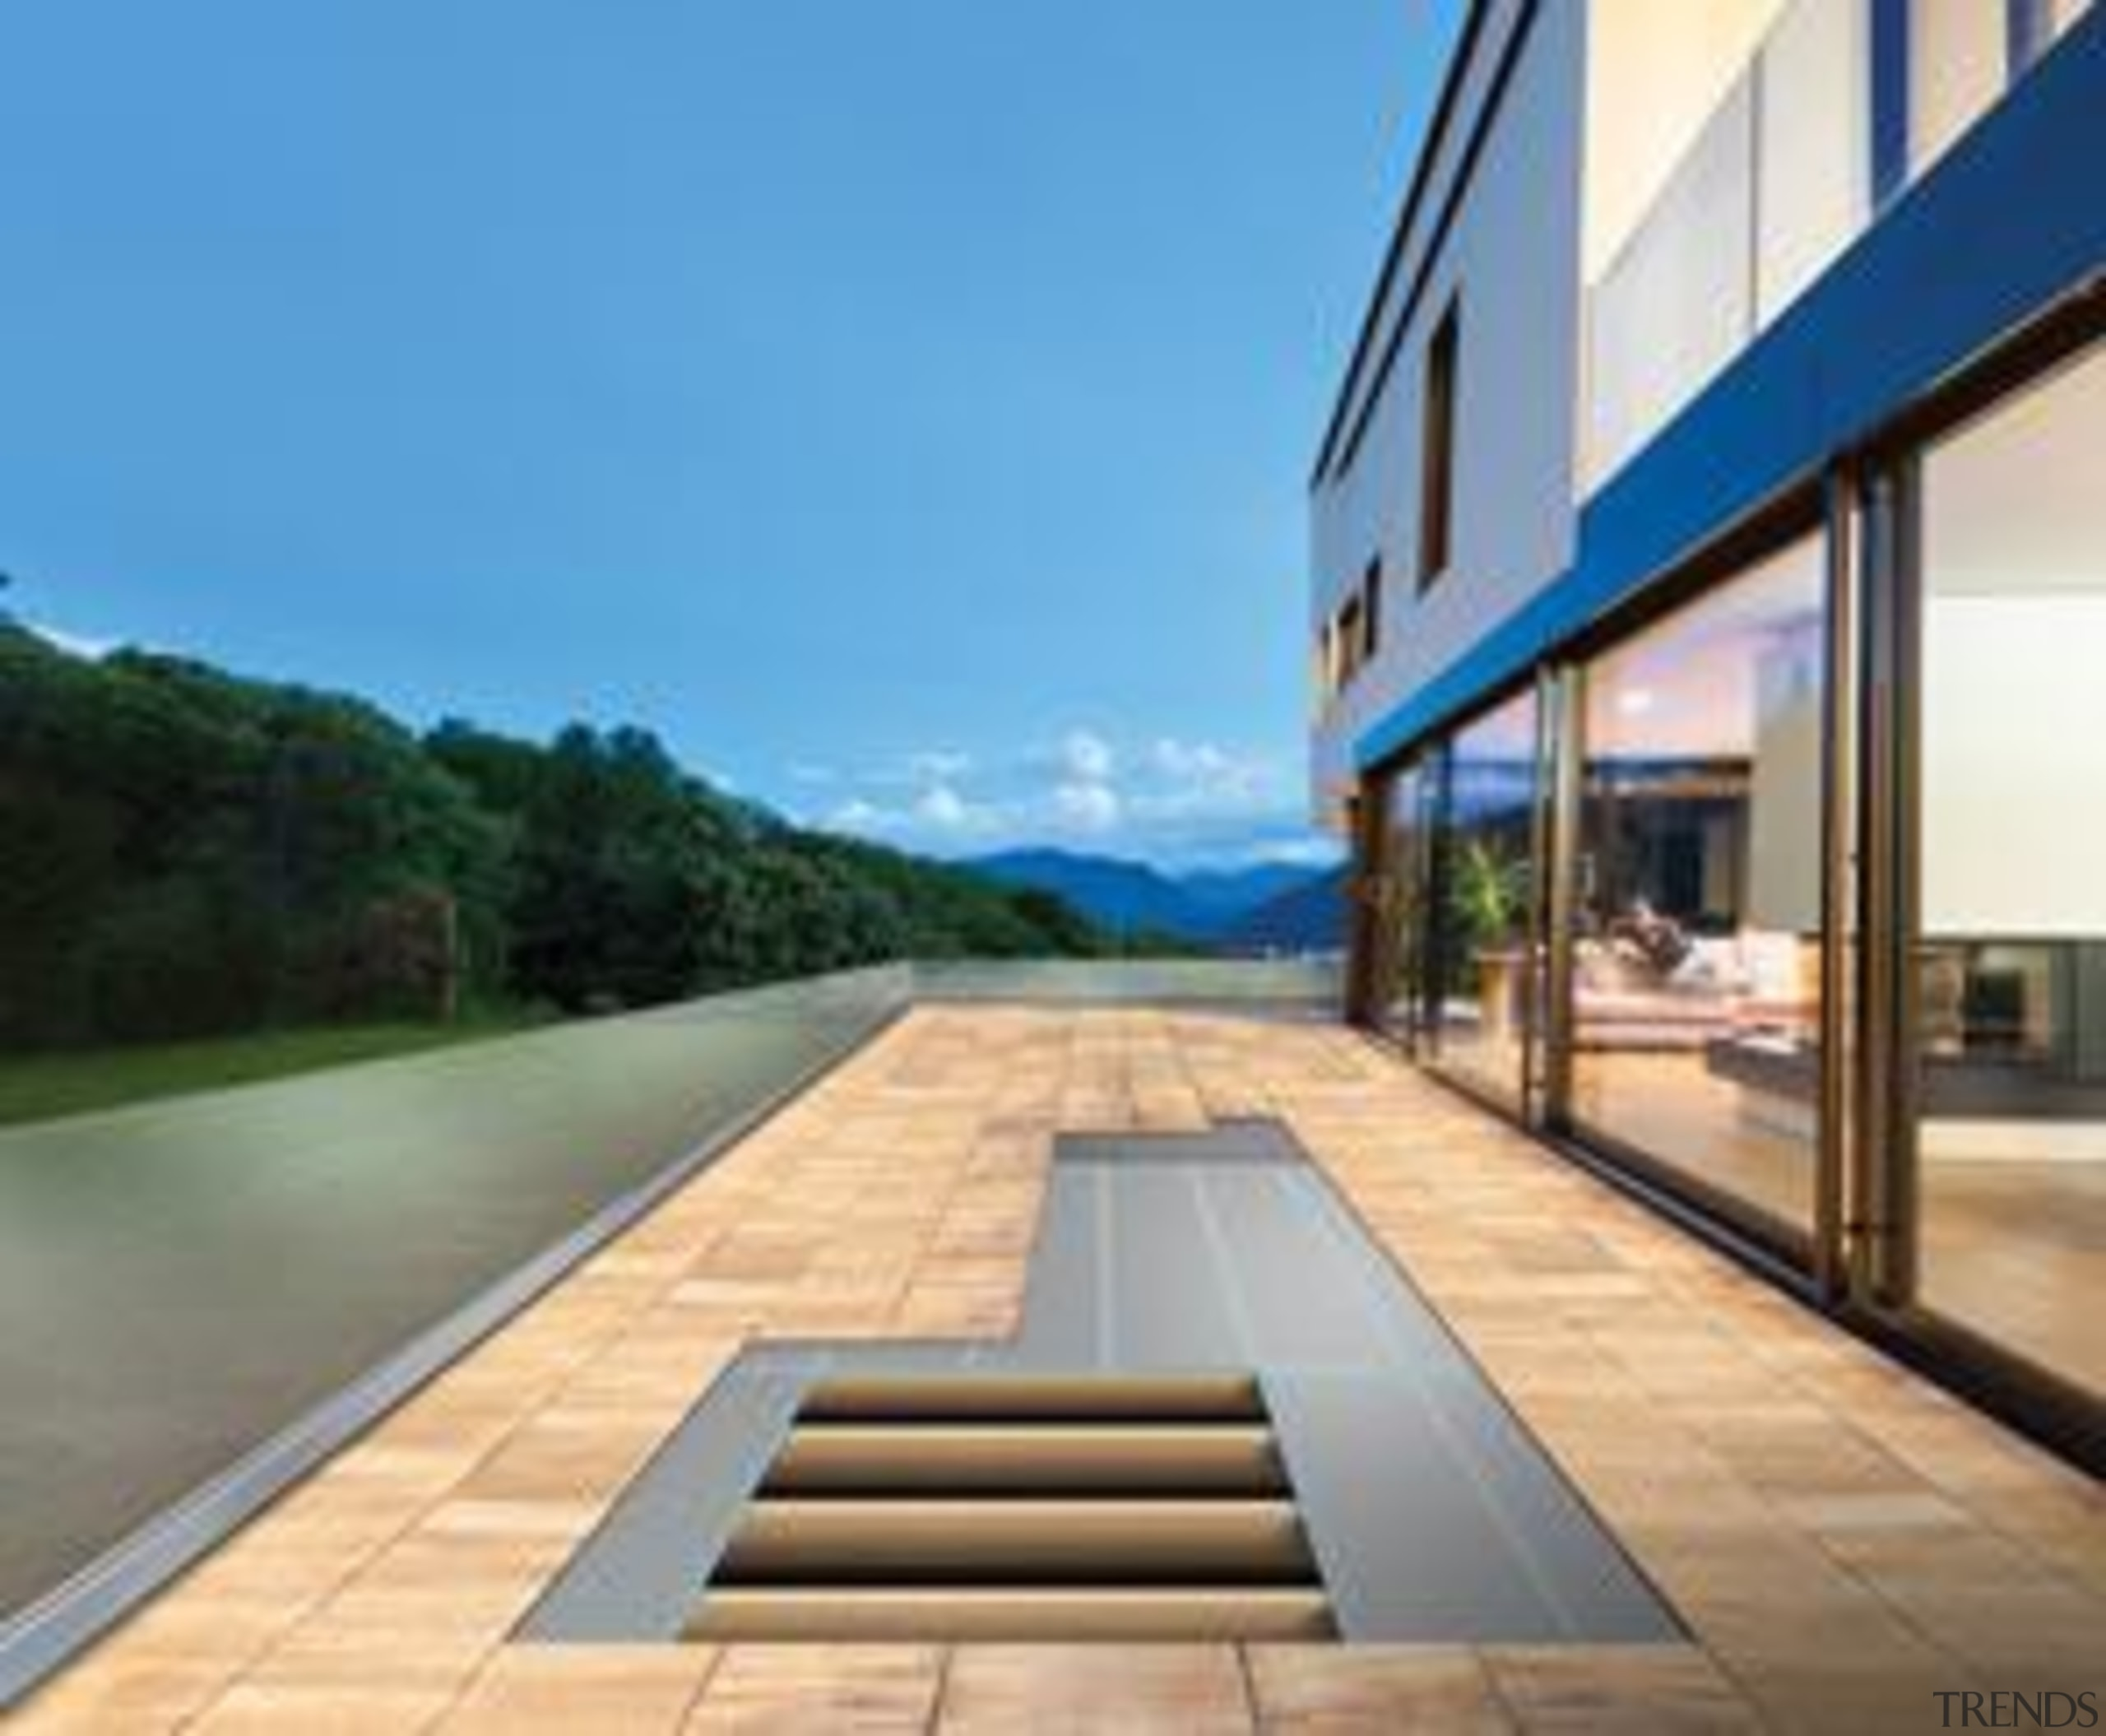 structural exterior flooring - structural exterior flooring - architecture, daylighting, floor, home, house, real estate, window, teal